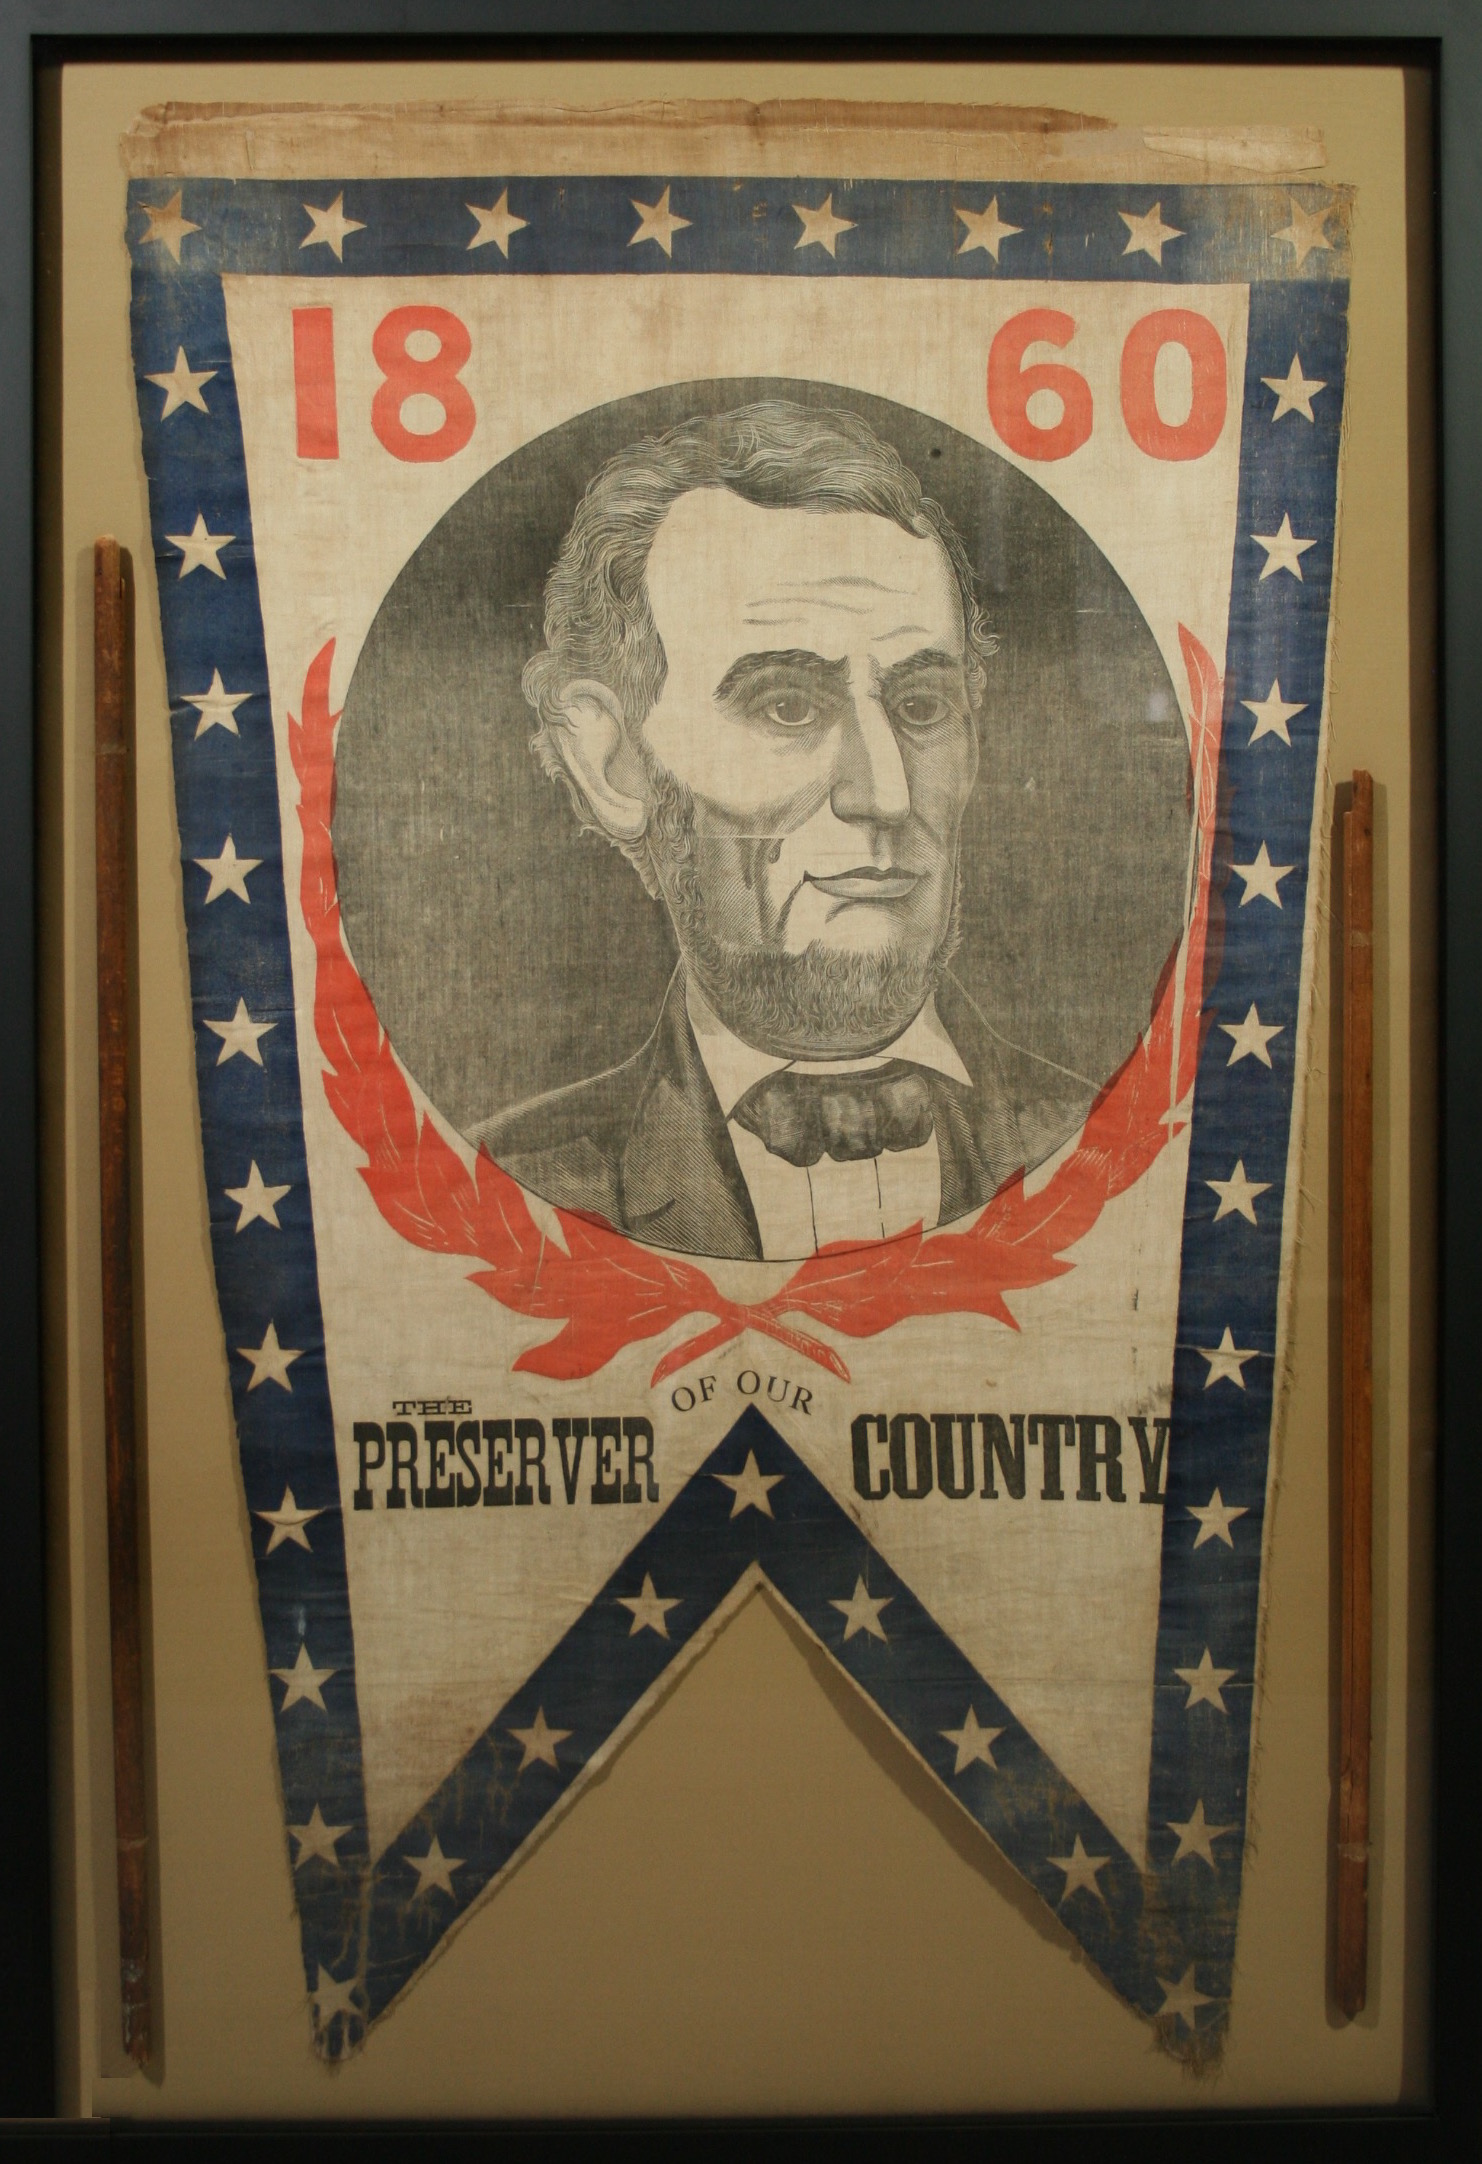 Historic banner textile from the Lincoln presidential campaign conserved and mounted in an archival frame.